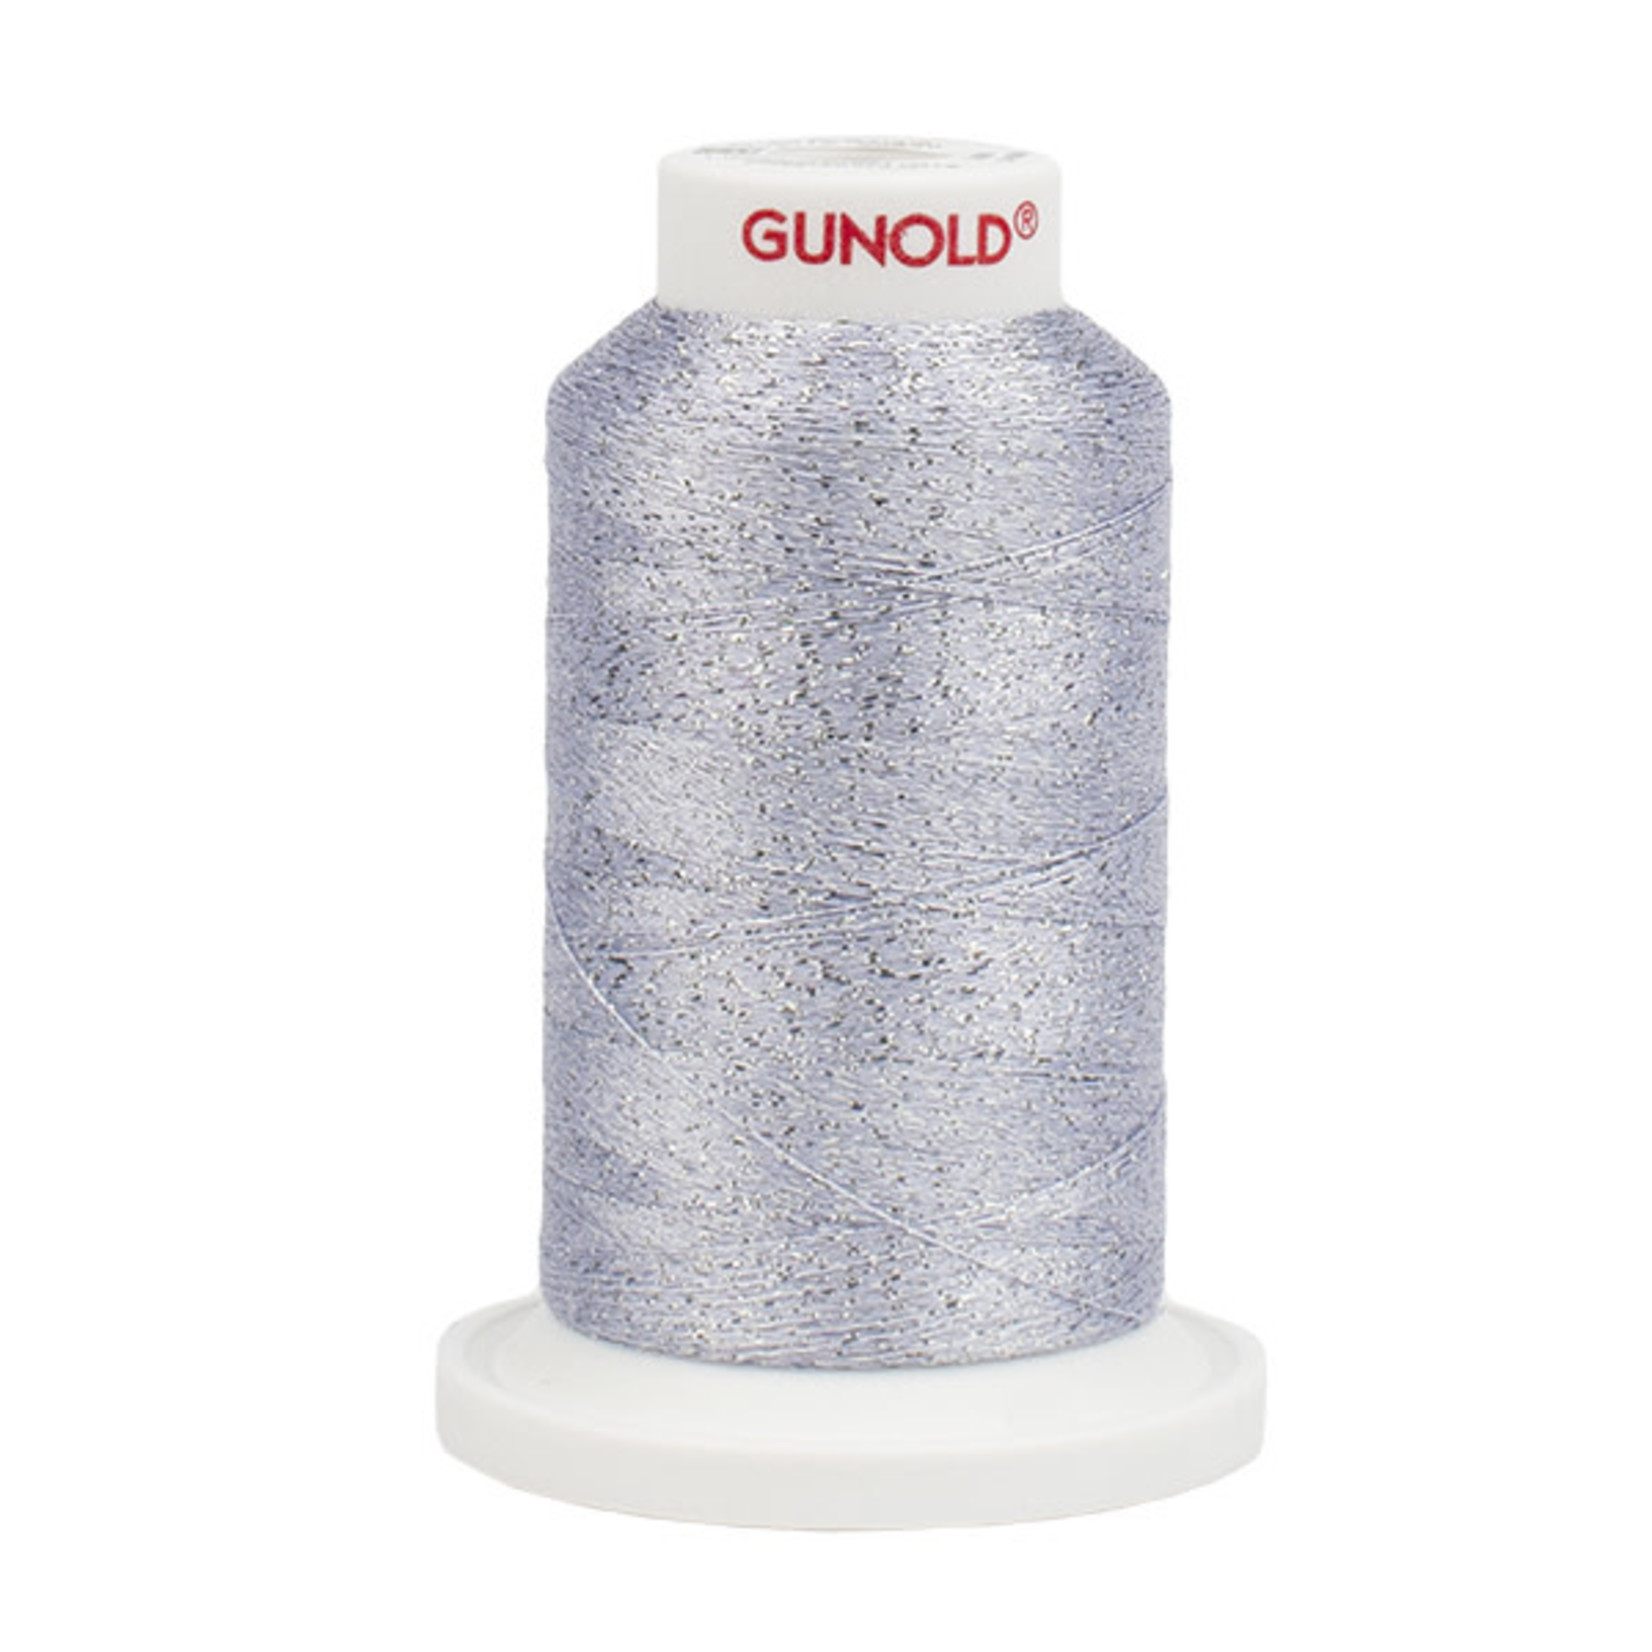 Gunold Poly Sparkle™ (Star™) Mini-King Cone 1,100 YD, 30 Wt, White with Silver Sparkle 50540